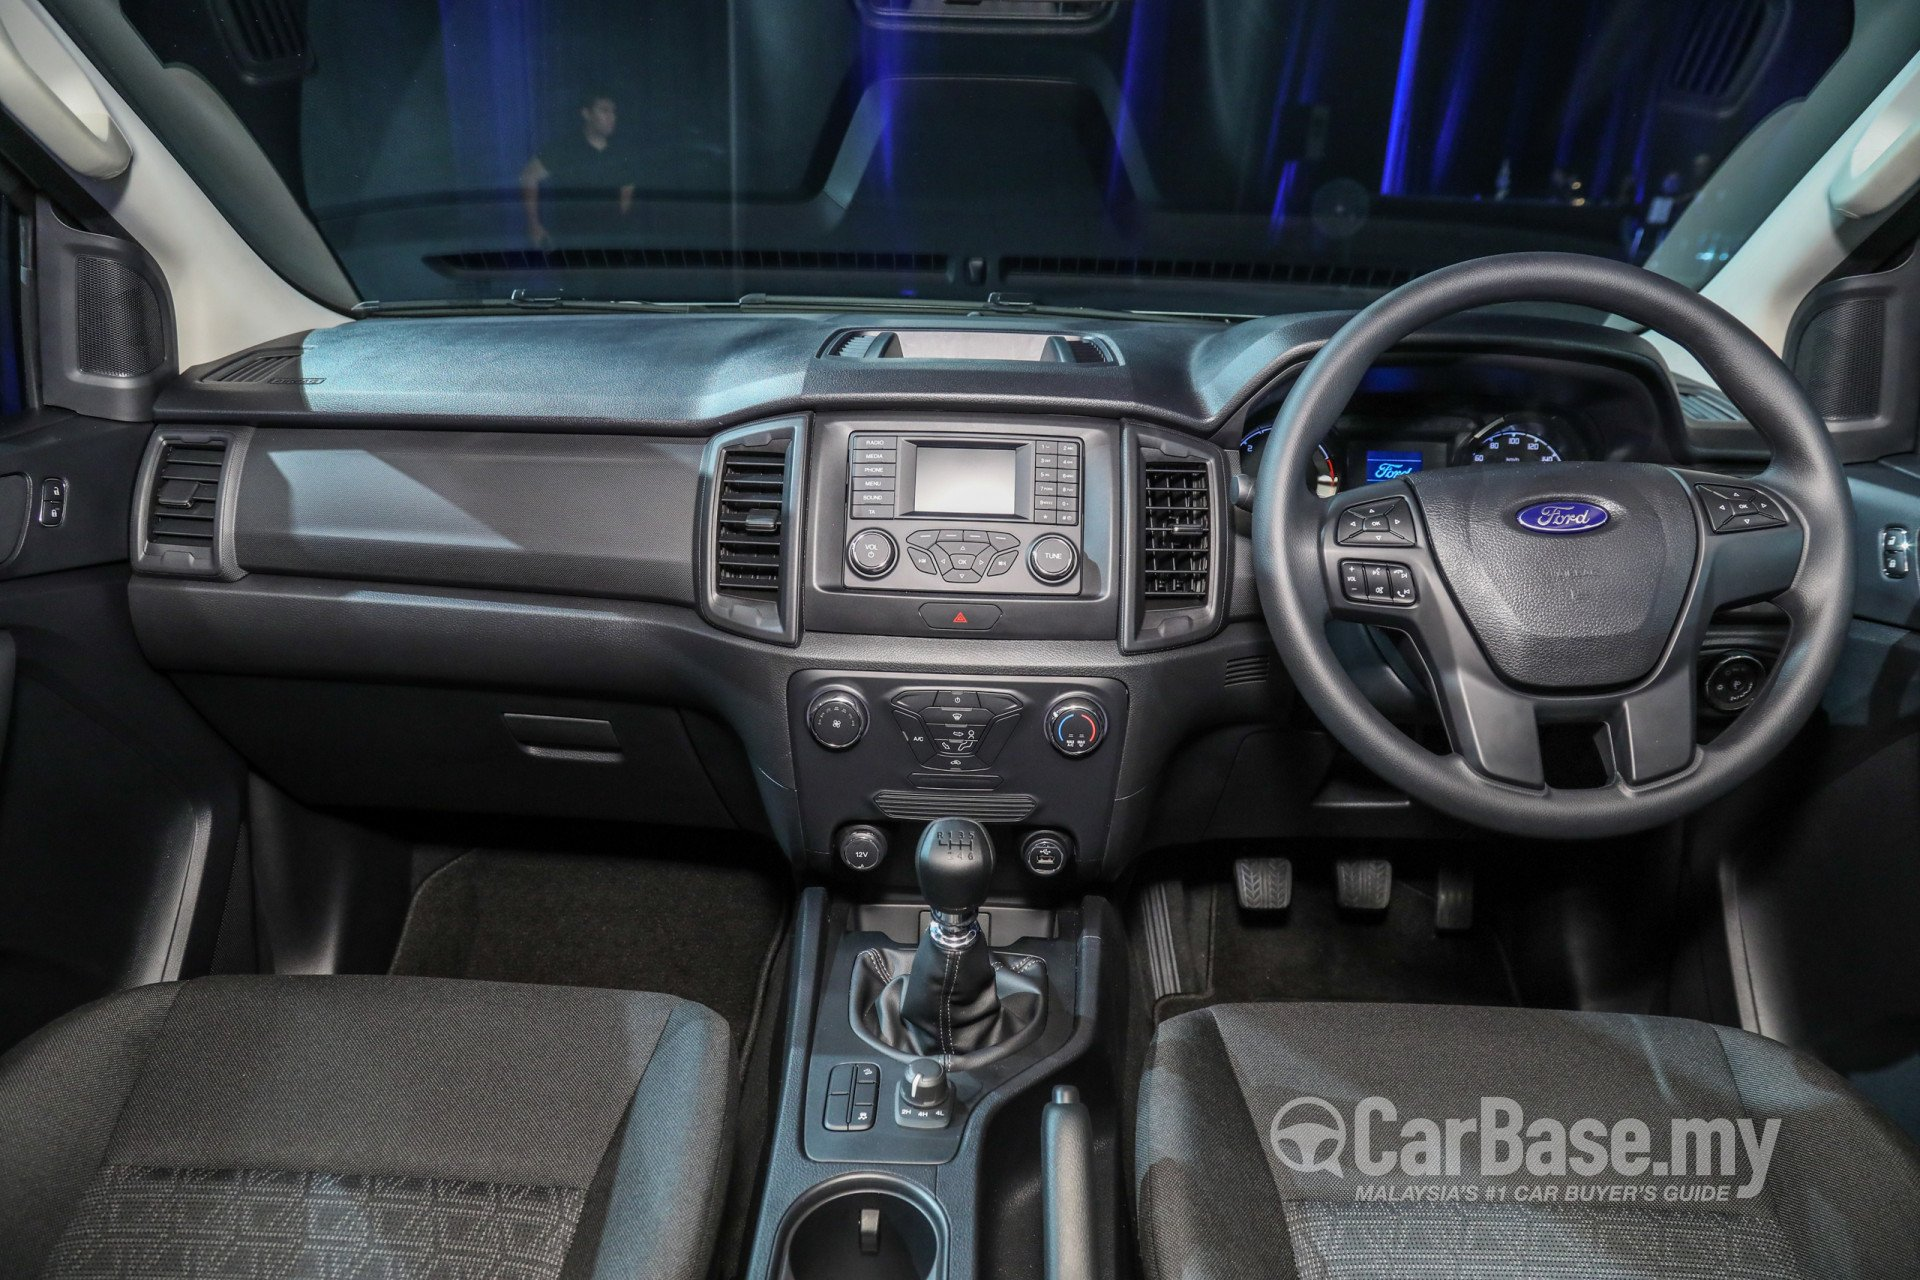 Ford Ranger Xlt >> Ford Ranger T6 Facelift 2 (2018) Interior Image #52426 in Malaysia - Reviews, Specs, Prices ...